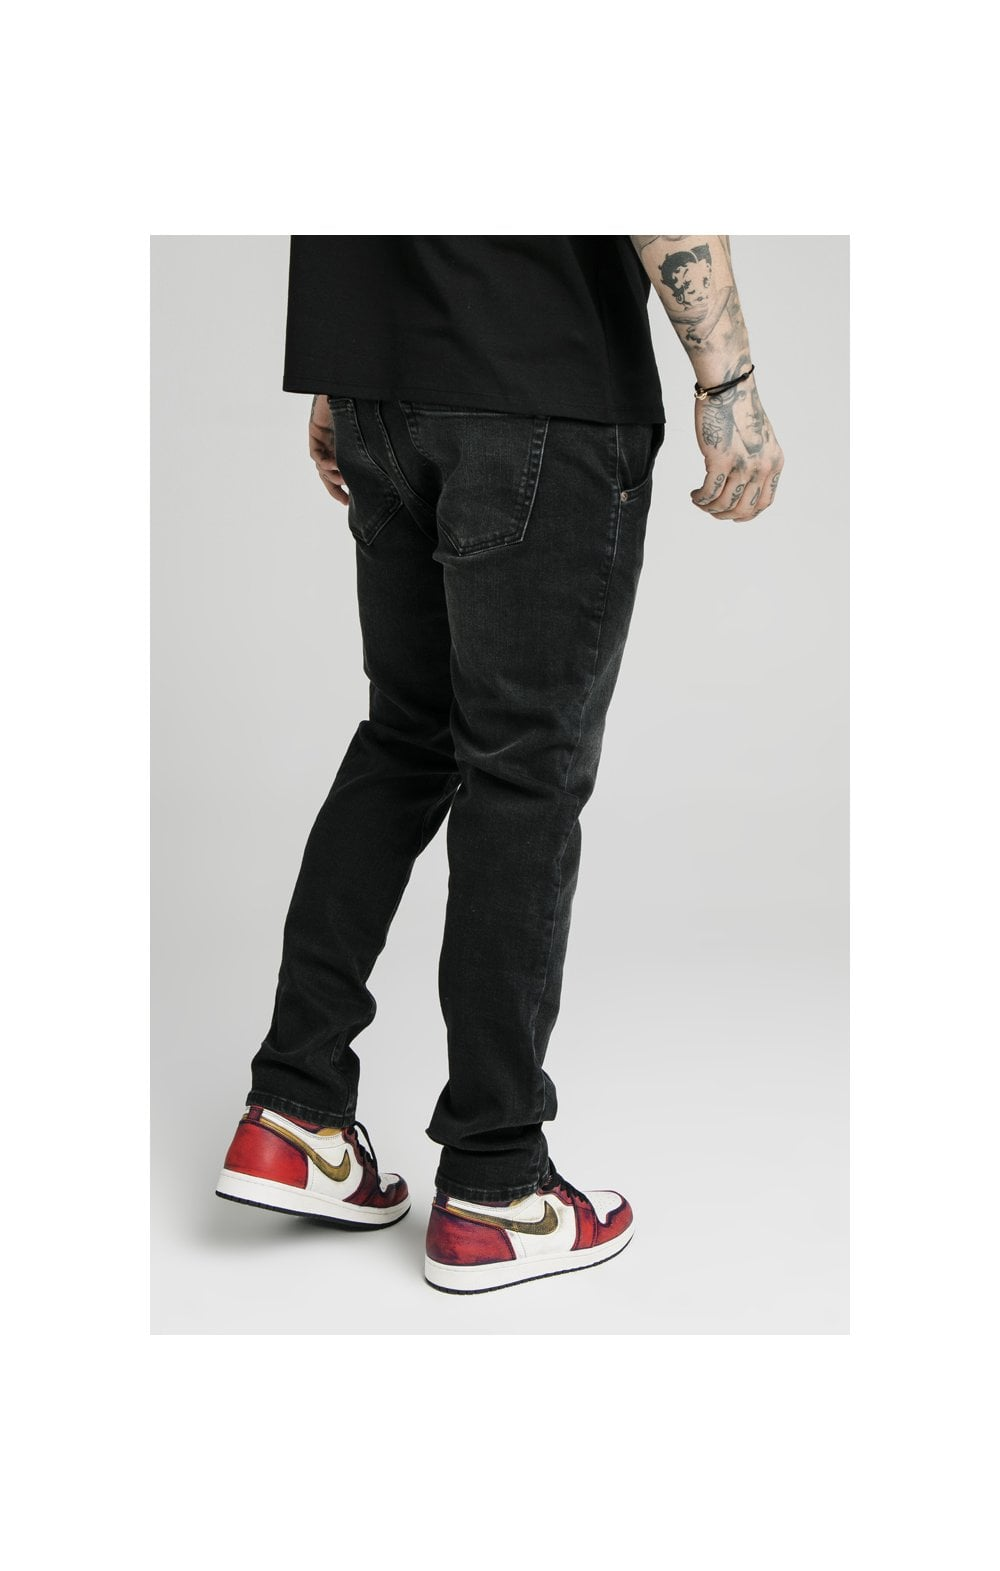 SikSilk Straight Cut Recycled Denim - Black (1)